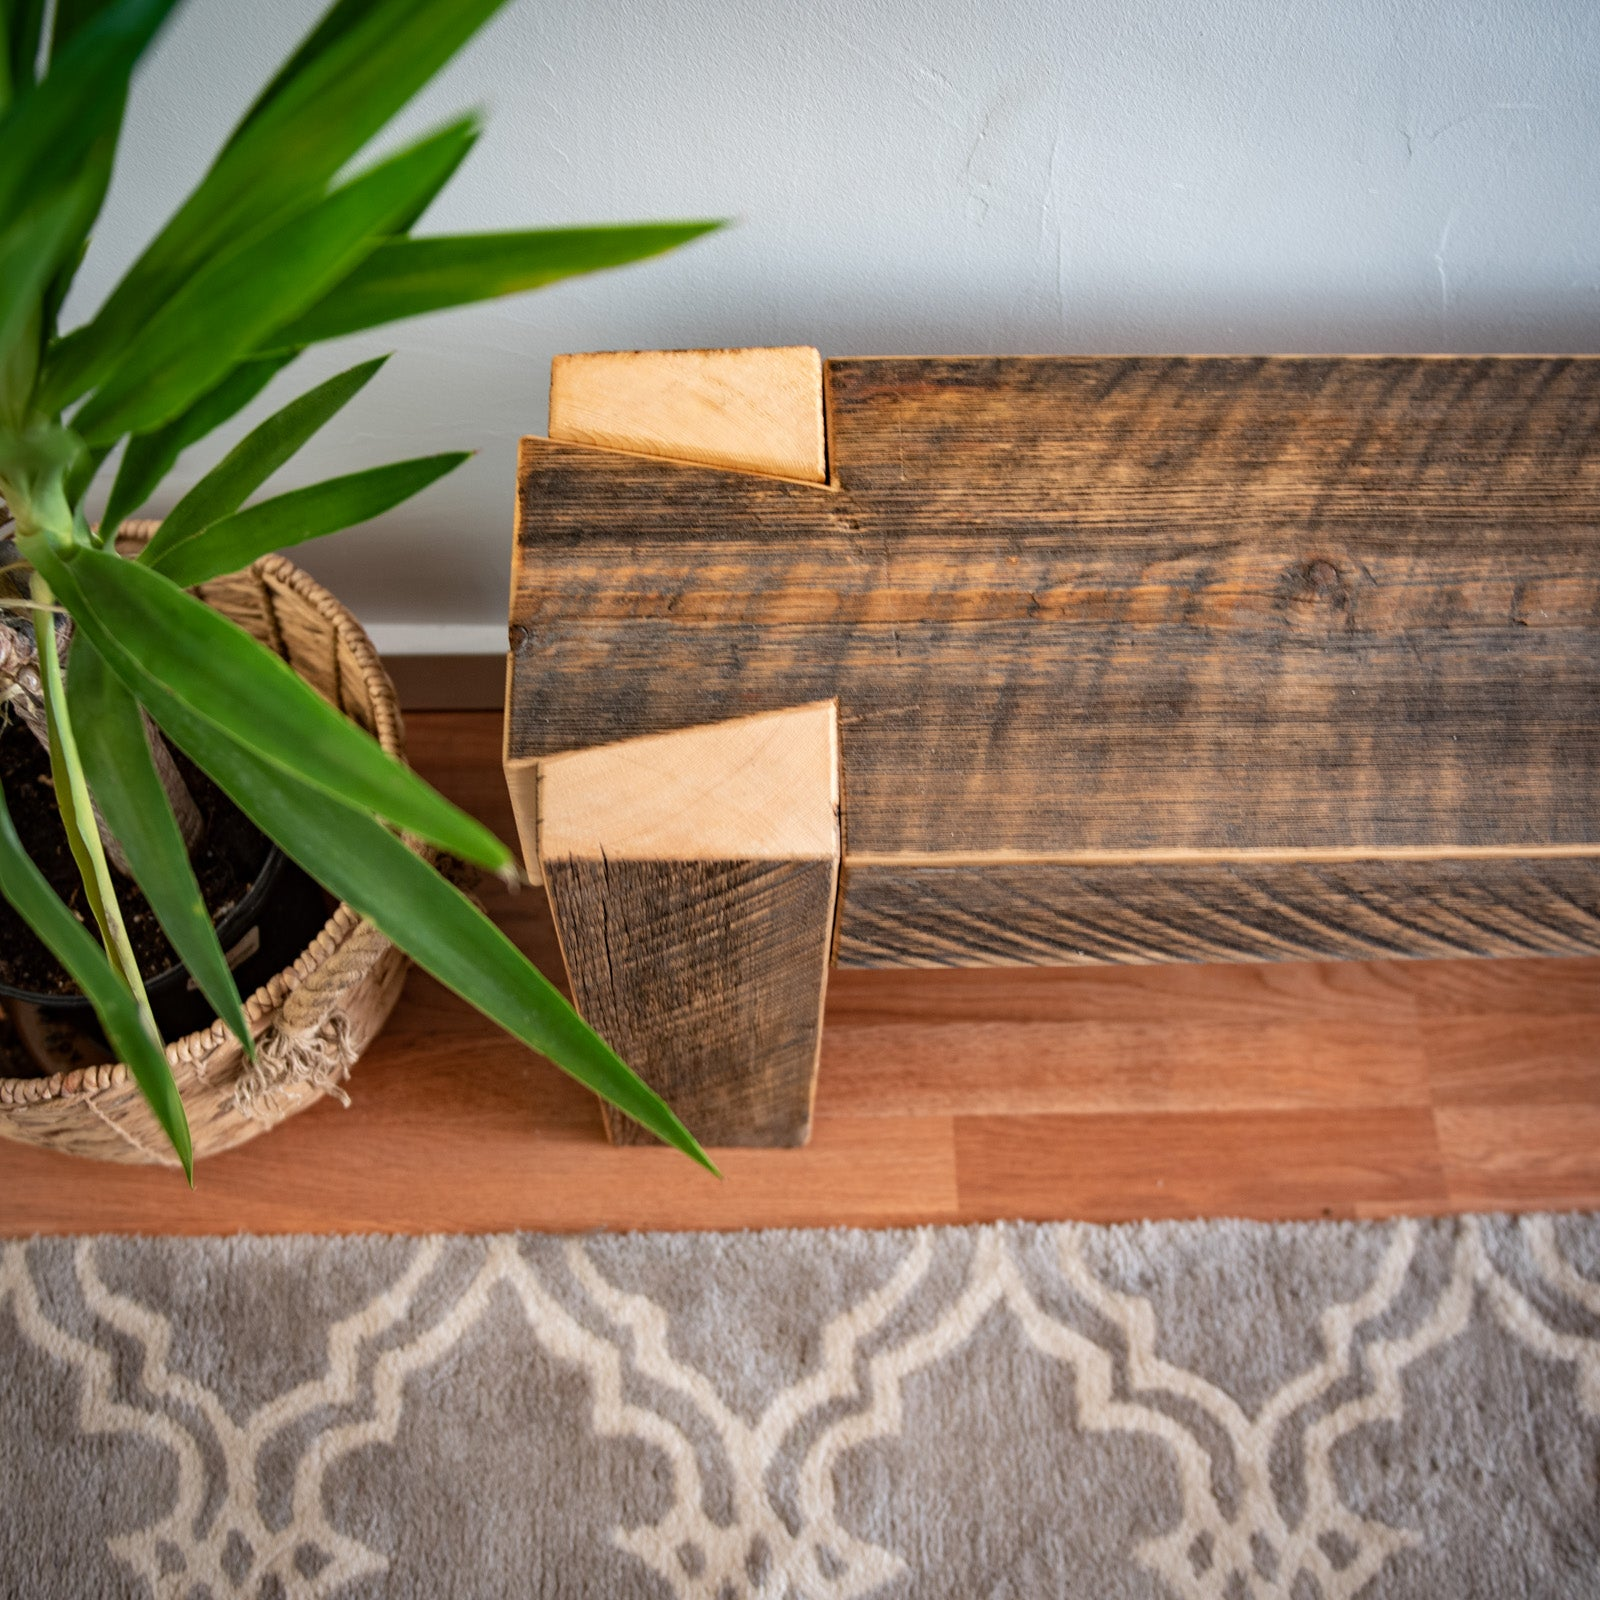 Outstanding Beam Bench Dovetail From Reclaimed Spruce Ibusinesslaw Wood Chair Design Ideas Ibusinesslaworg